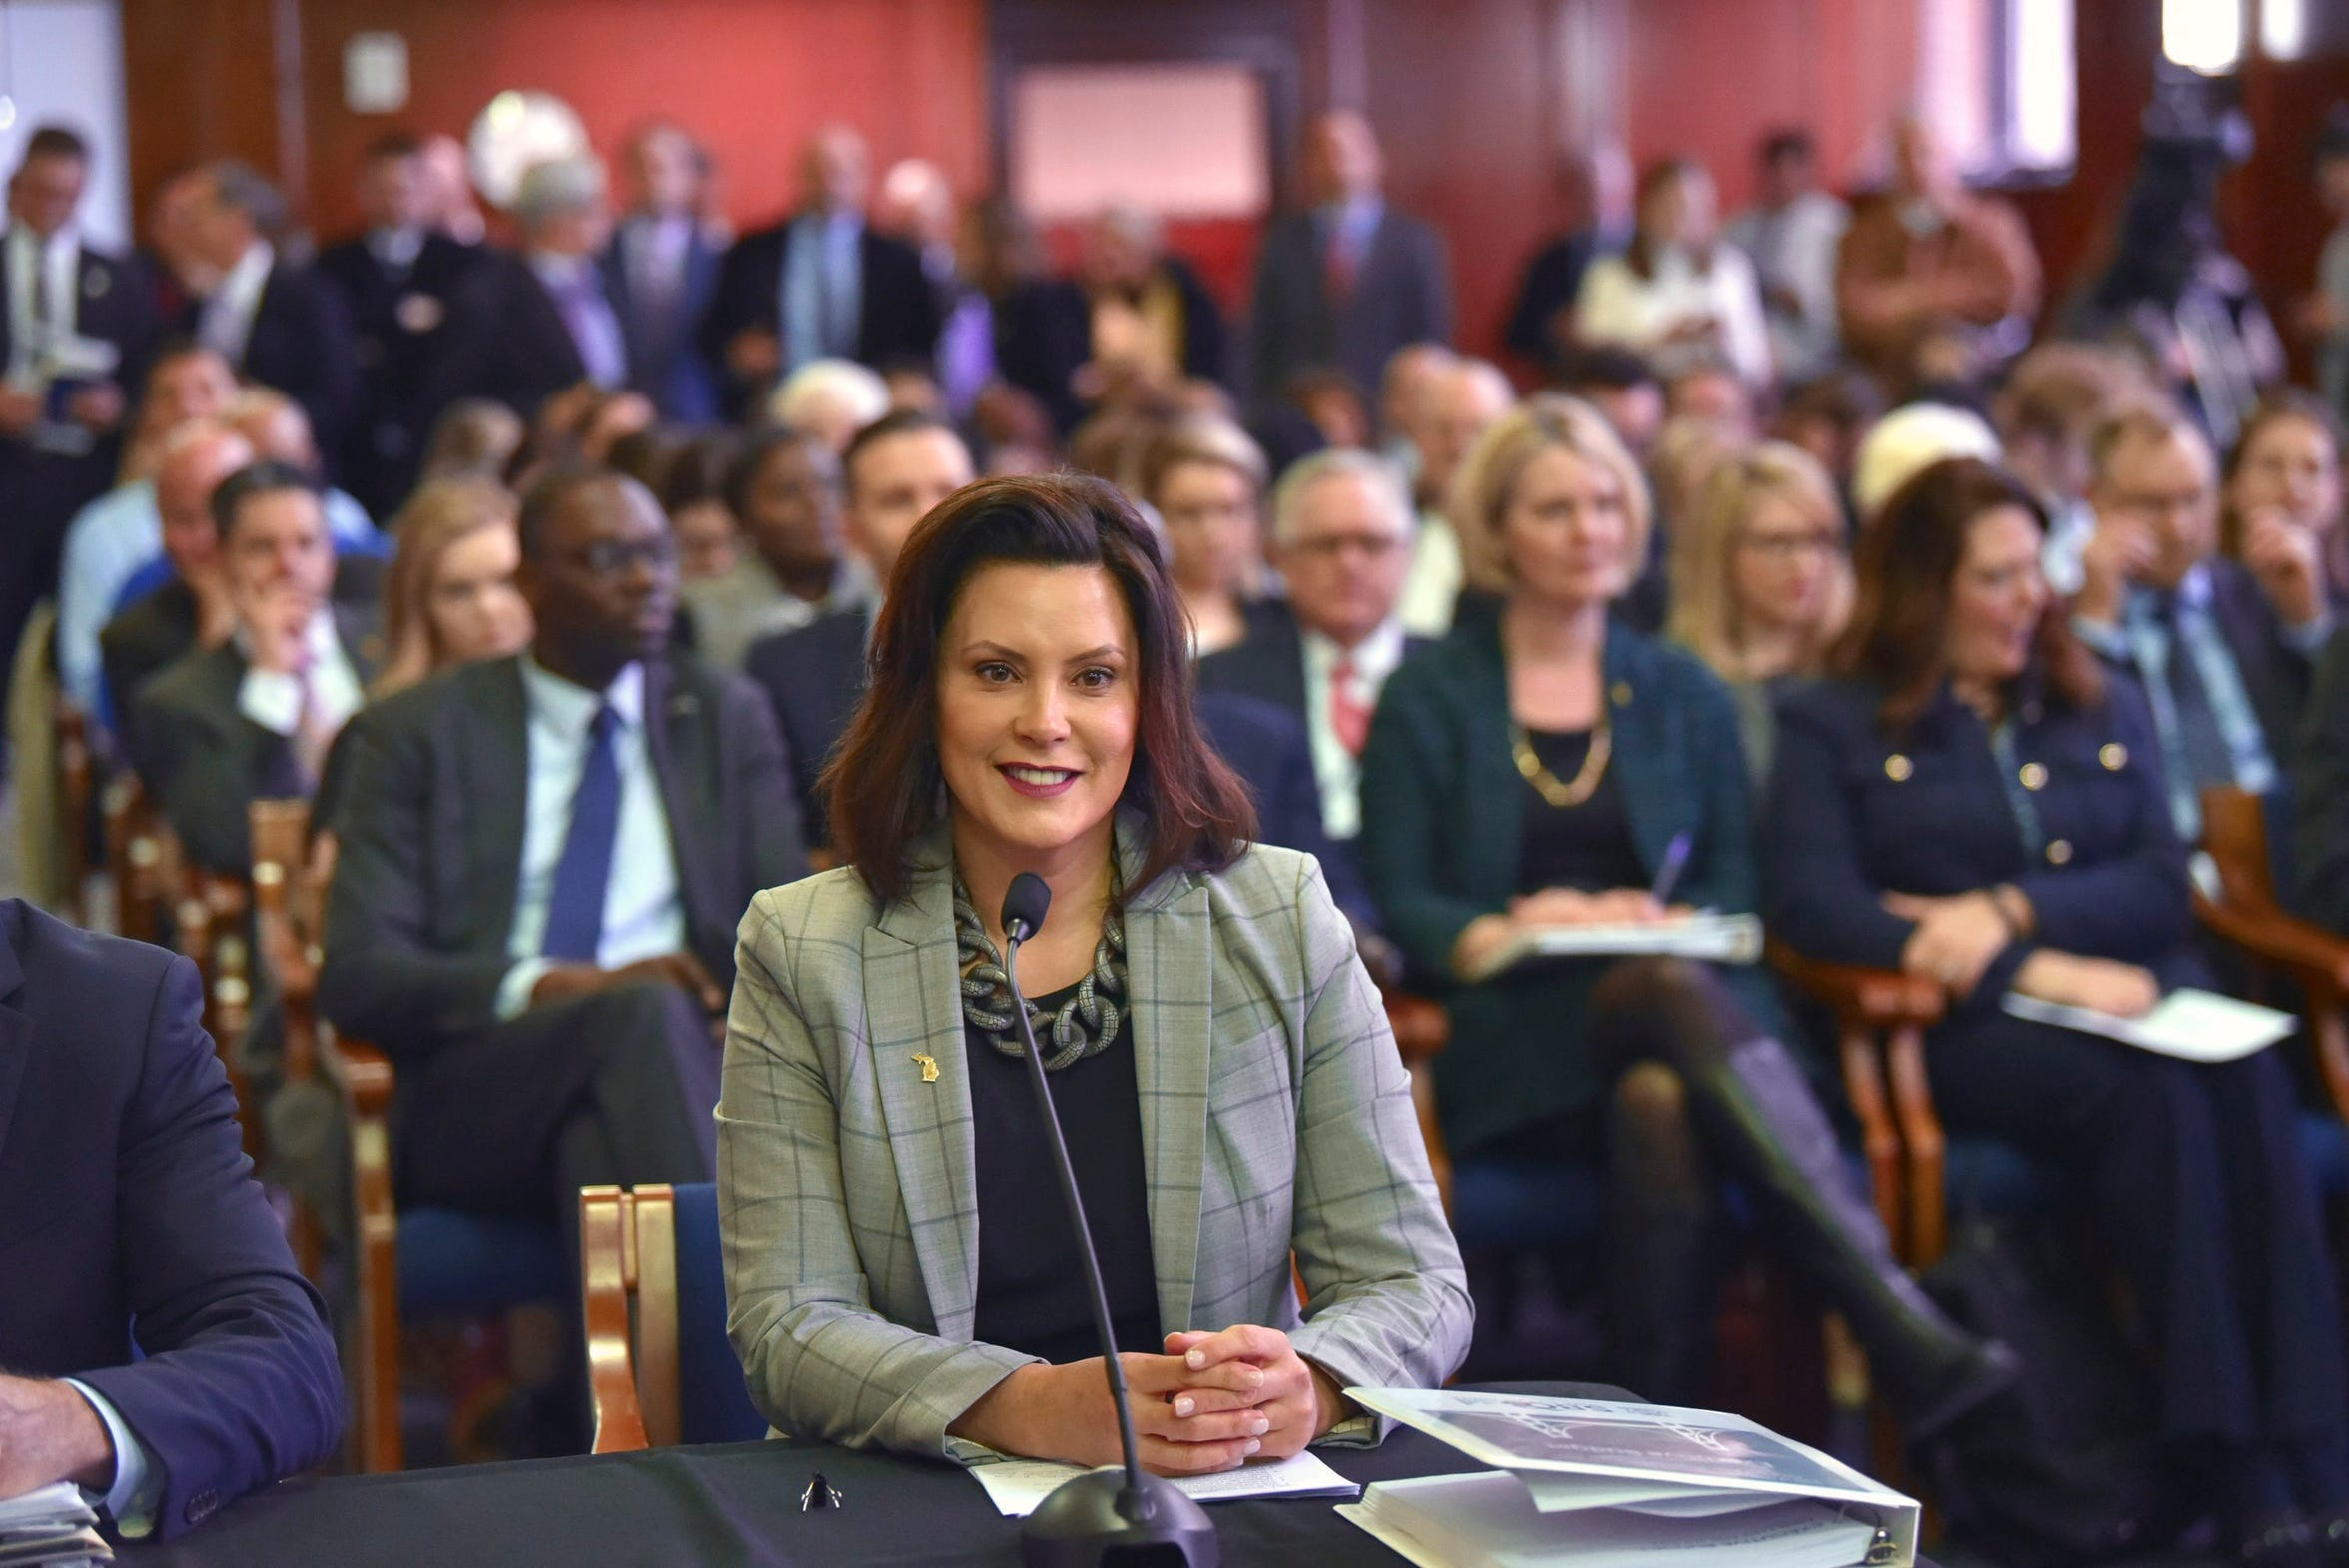 Gov. Gretchen Whitmer presents her fiscal year 2020 budget proposal to lawmakers during a joint meeting of the House and Senate appropriations committees in the Senate Hearing Room at the state capitol in Lansing, March 5, 2019.